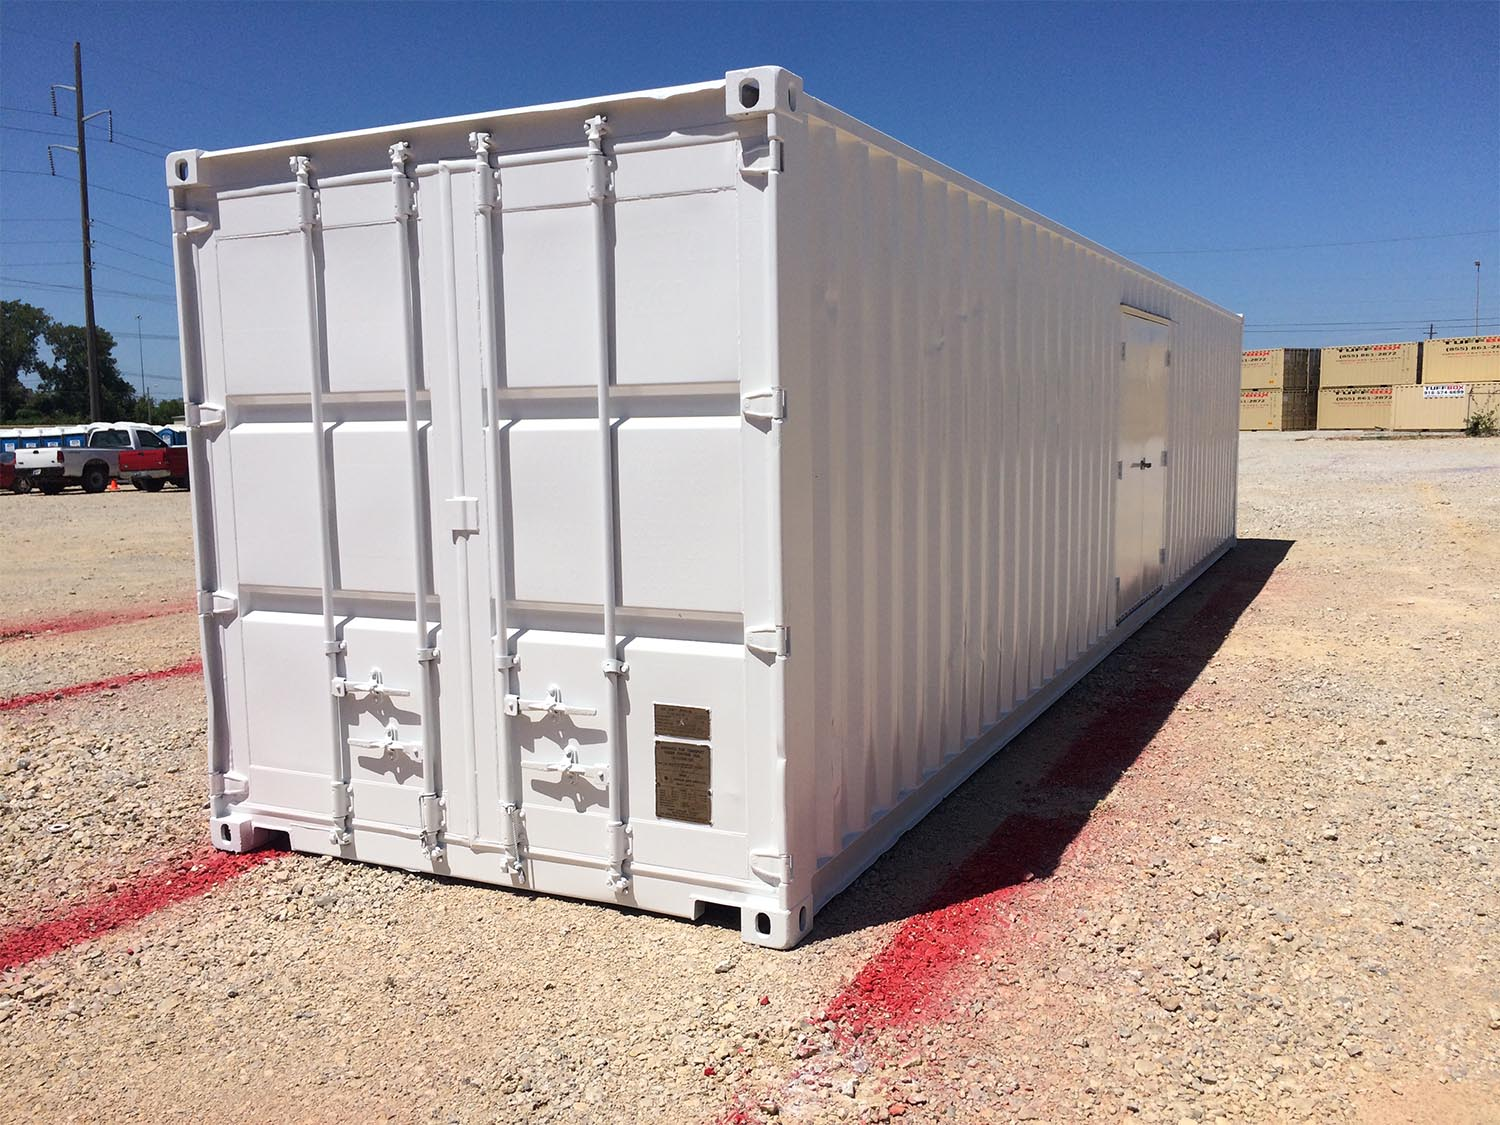 Shipping container painted white